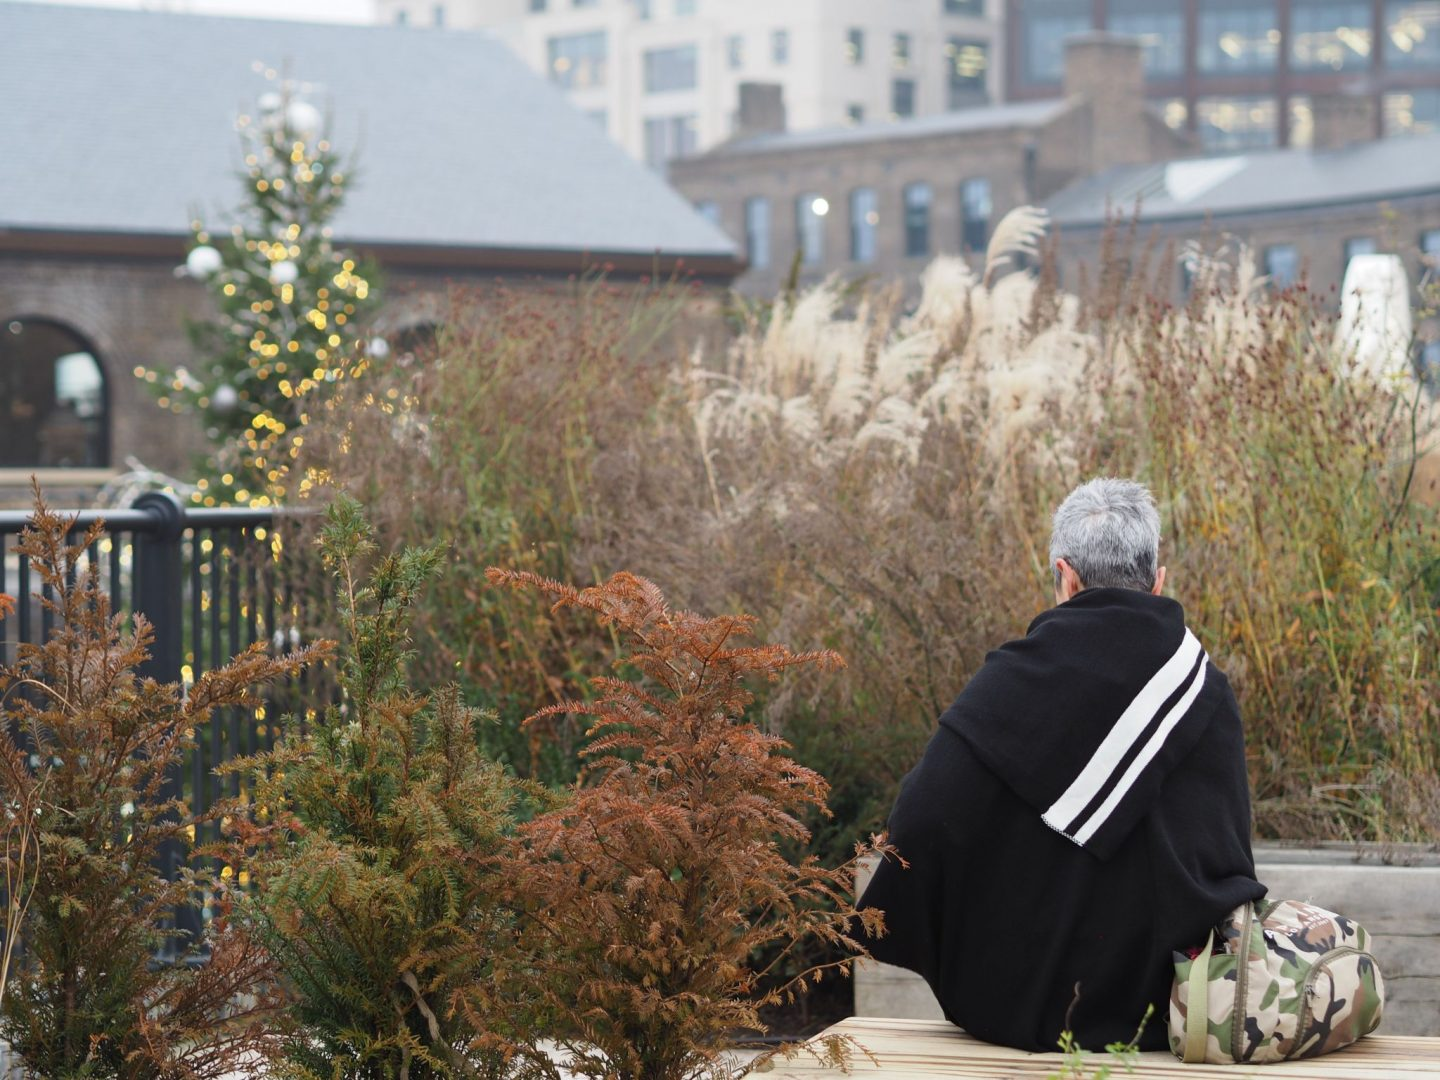 Coal Drops Yard, Highline, grasses, Mary Middleton for Hello Peagreen